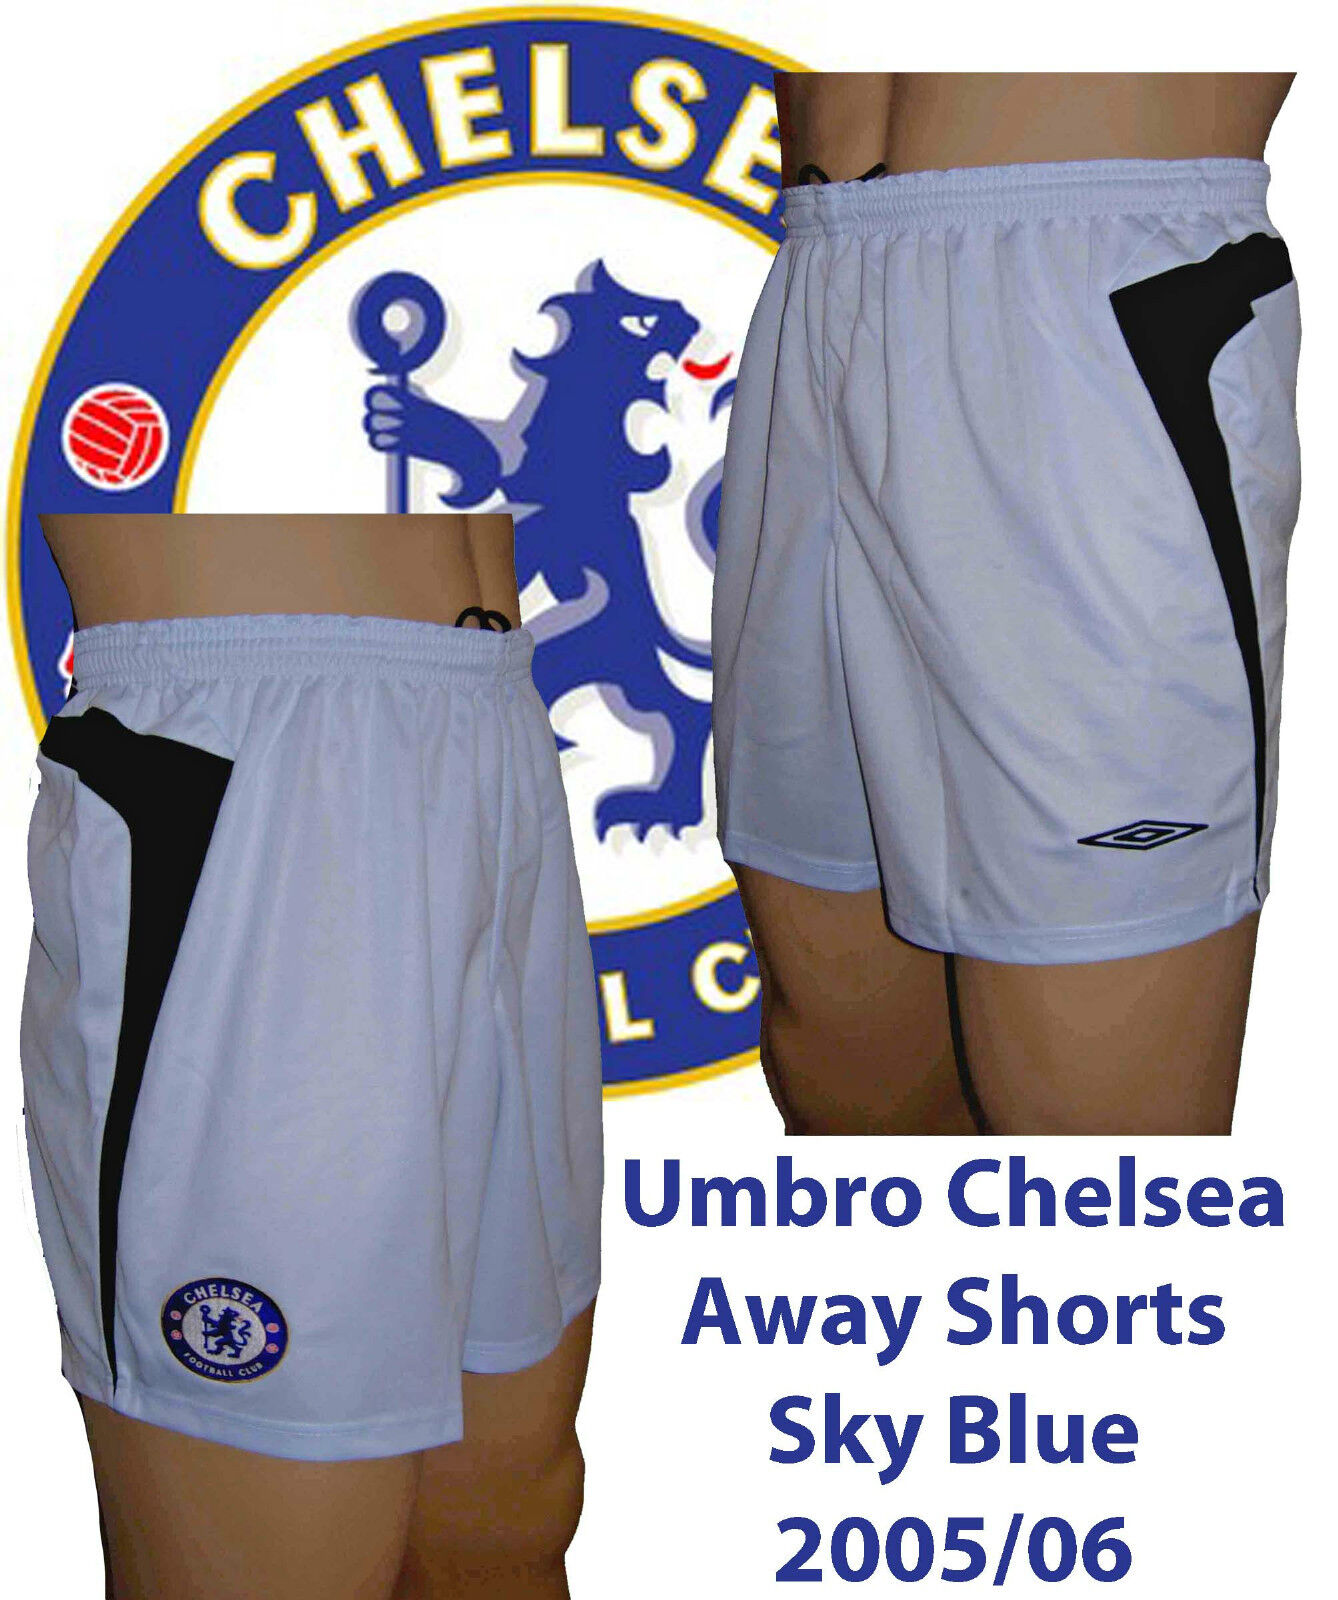 Umbro Chelsea Away Shorts Xx/large Sky 2005/06 Only 1